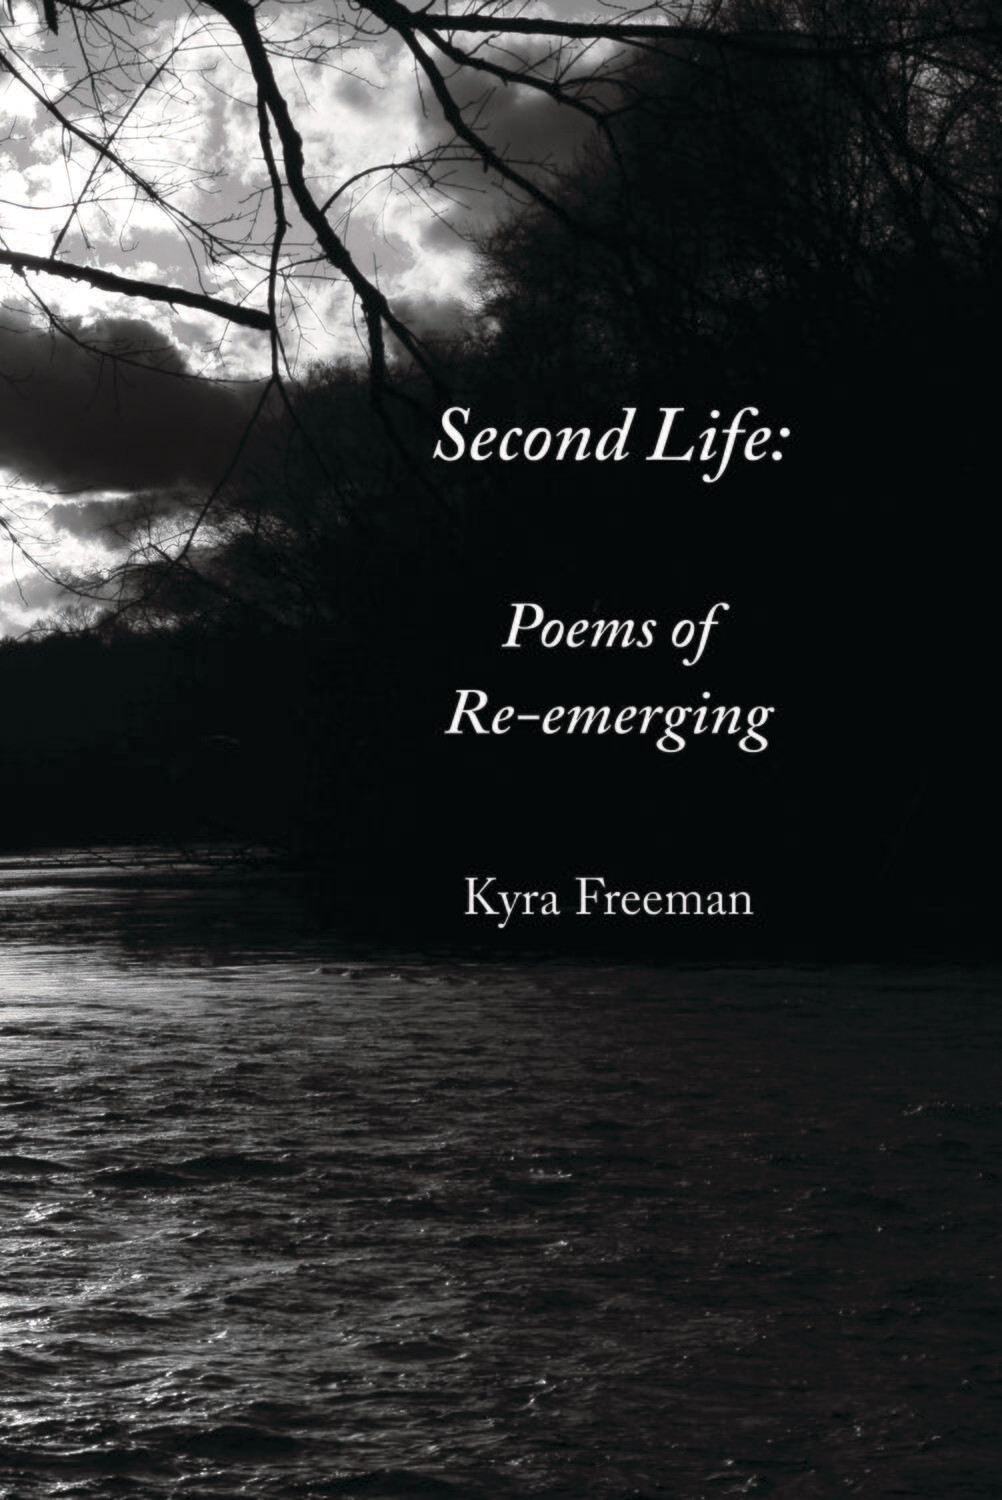 Second Life: Poems of Re-emerging